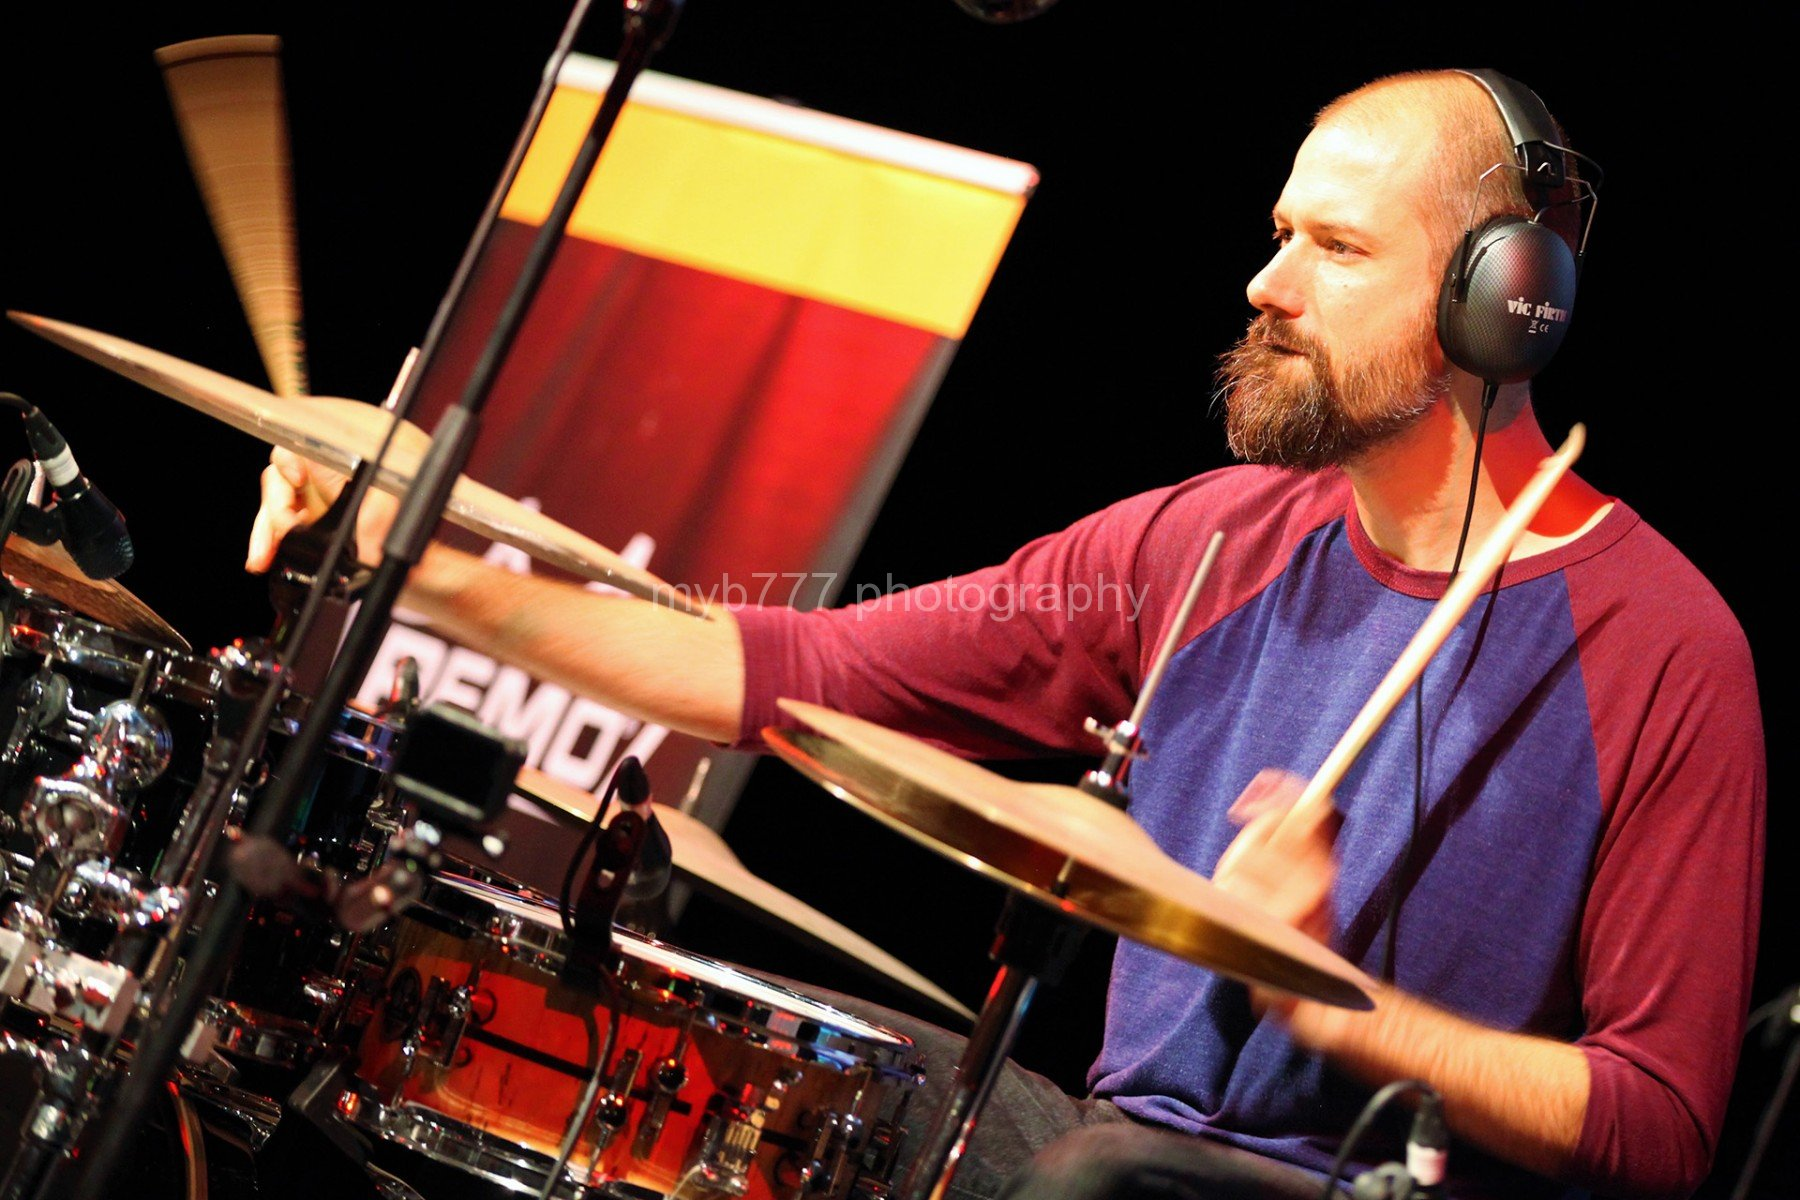 Drummer-Photography-by-myb777-40